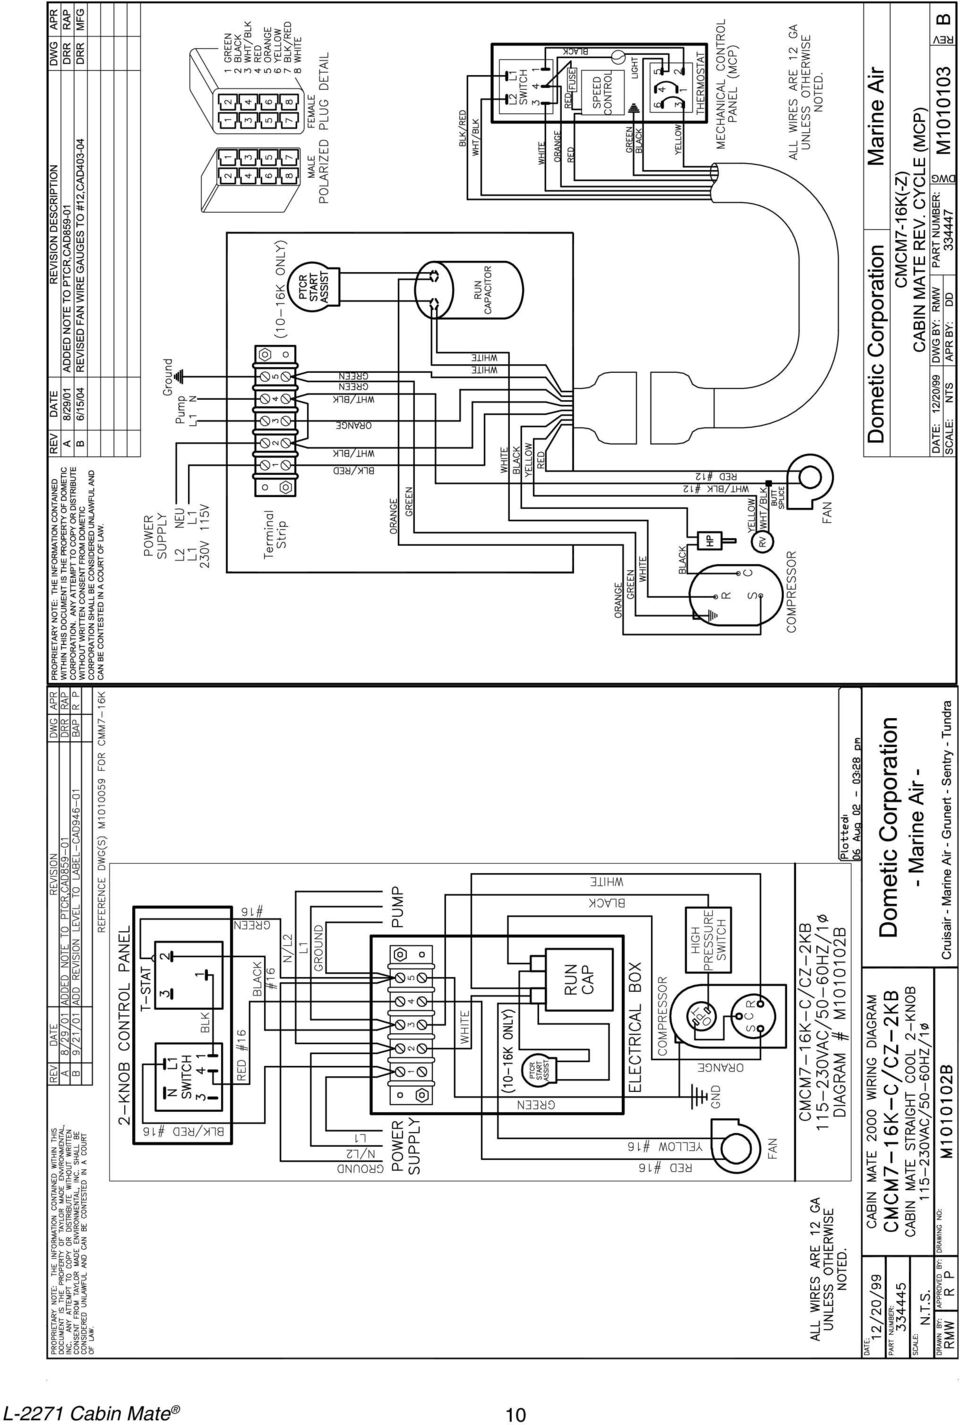 Cabin Mate Installation Operation And Maintenance Revised L Pdf Rule 500 Wiring Diagram 10